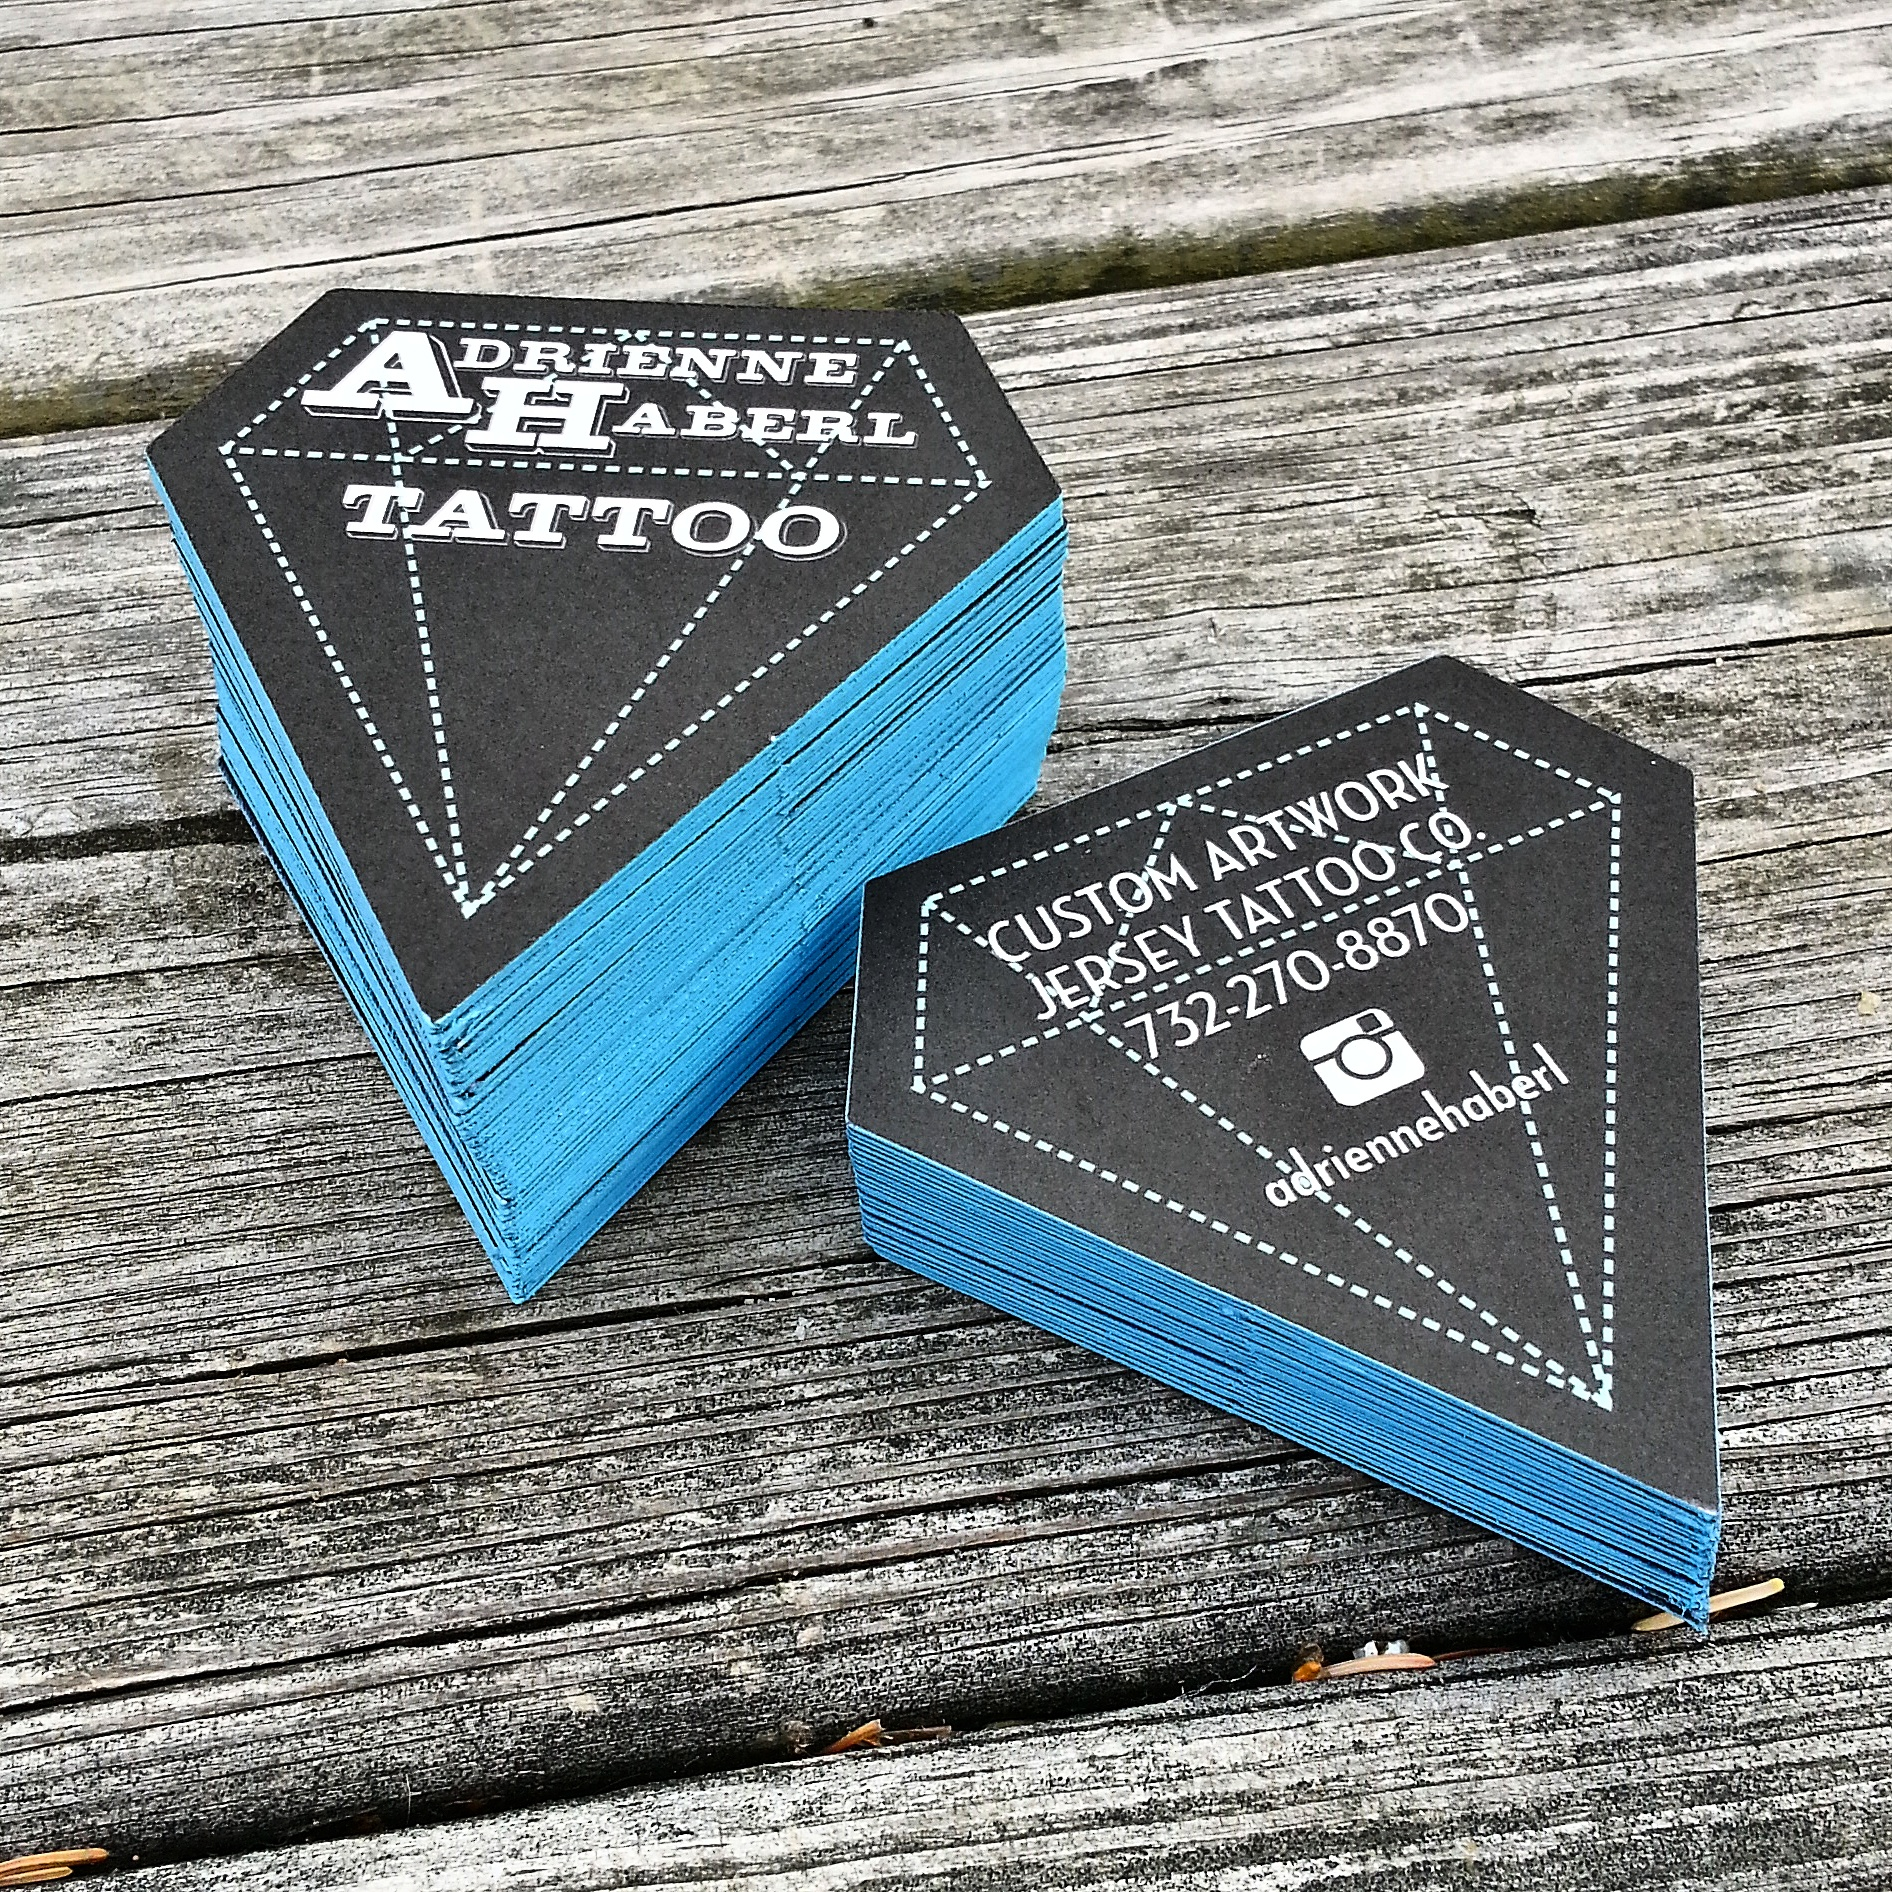 Diamond shaped business cards adrienne haberl magicingreecefo Choice Image